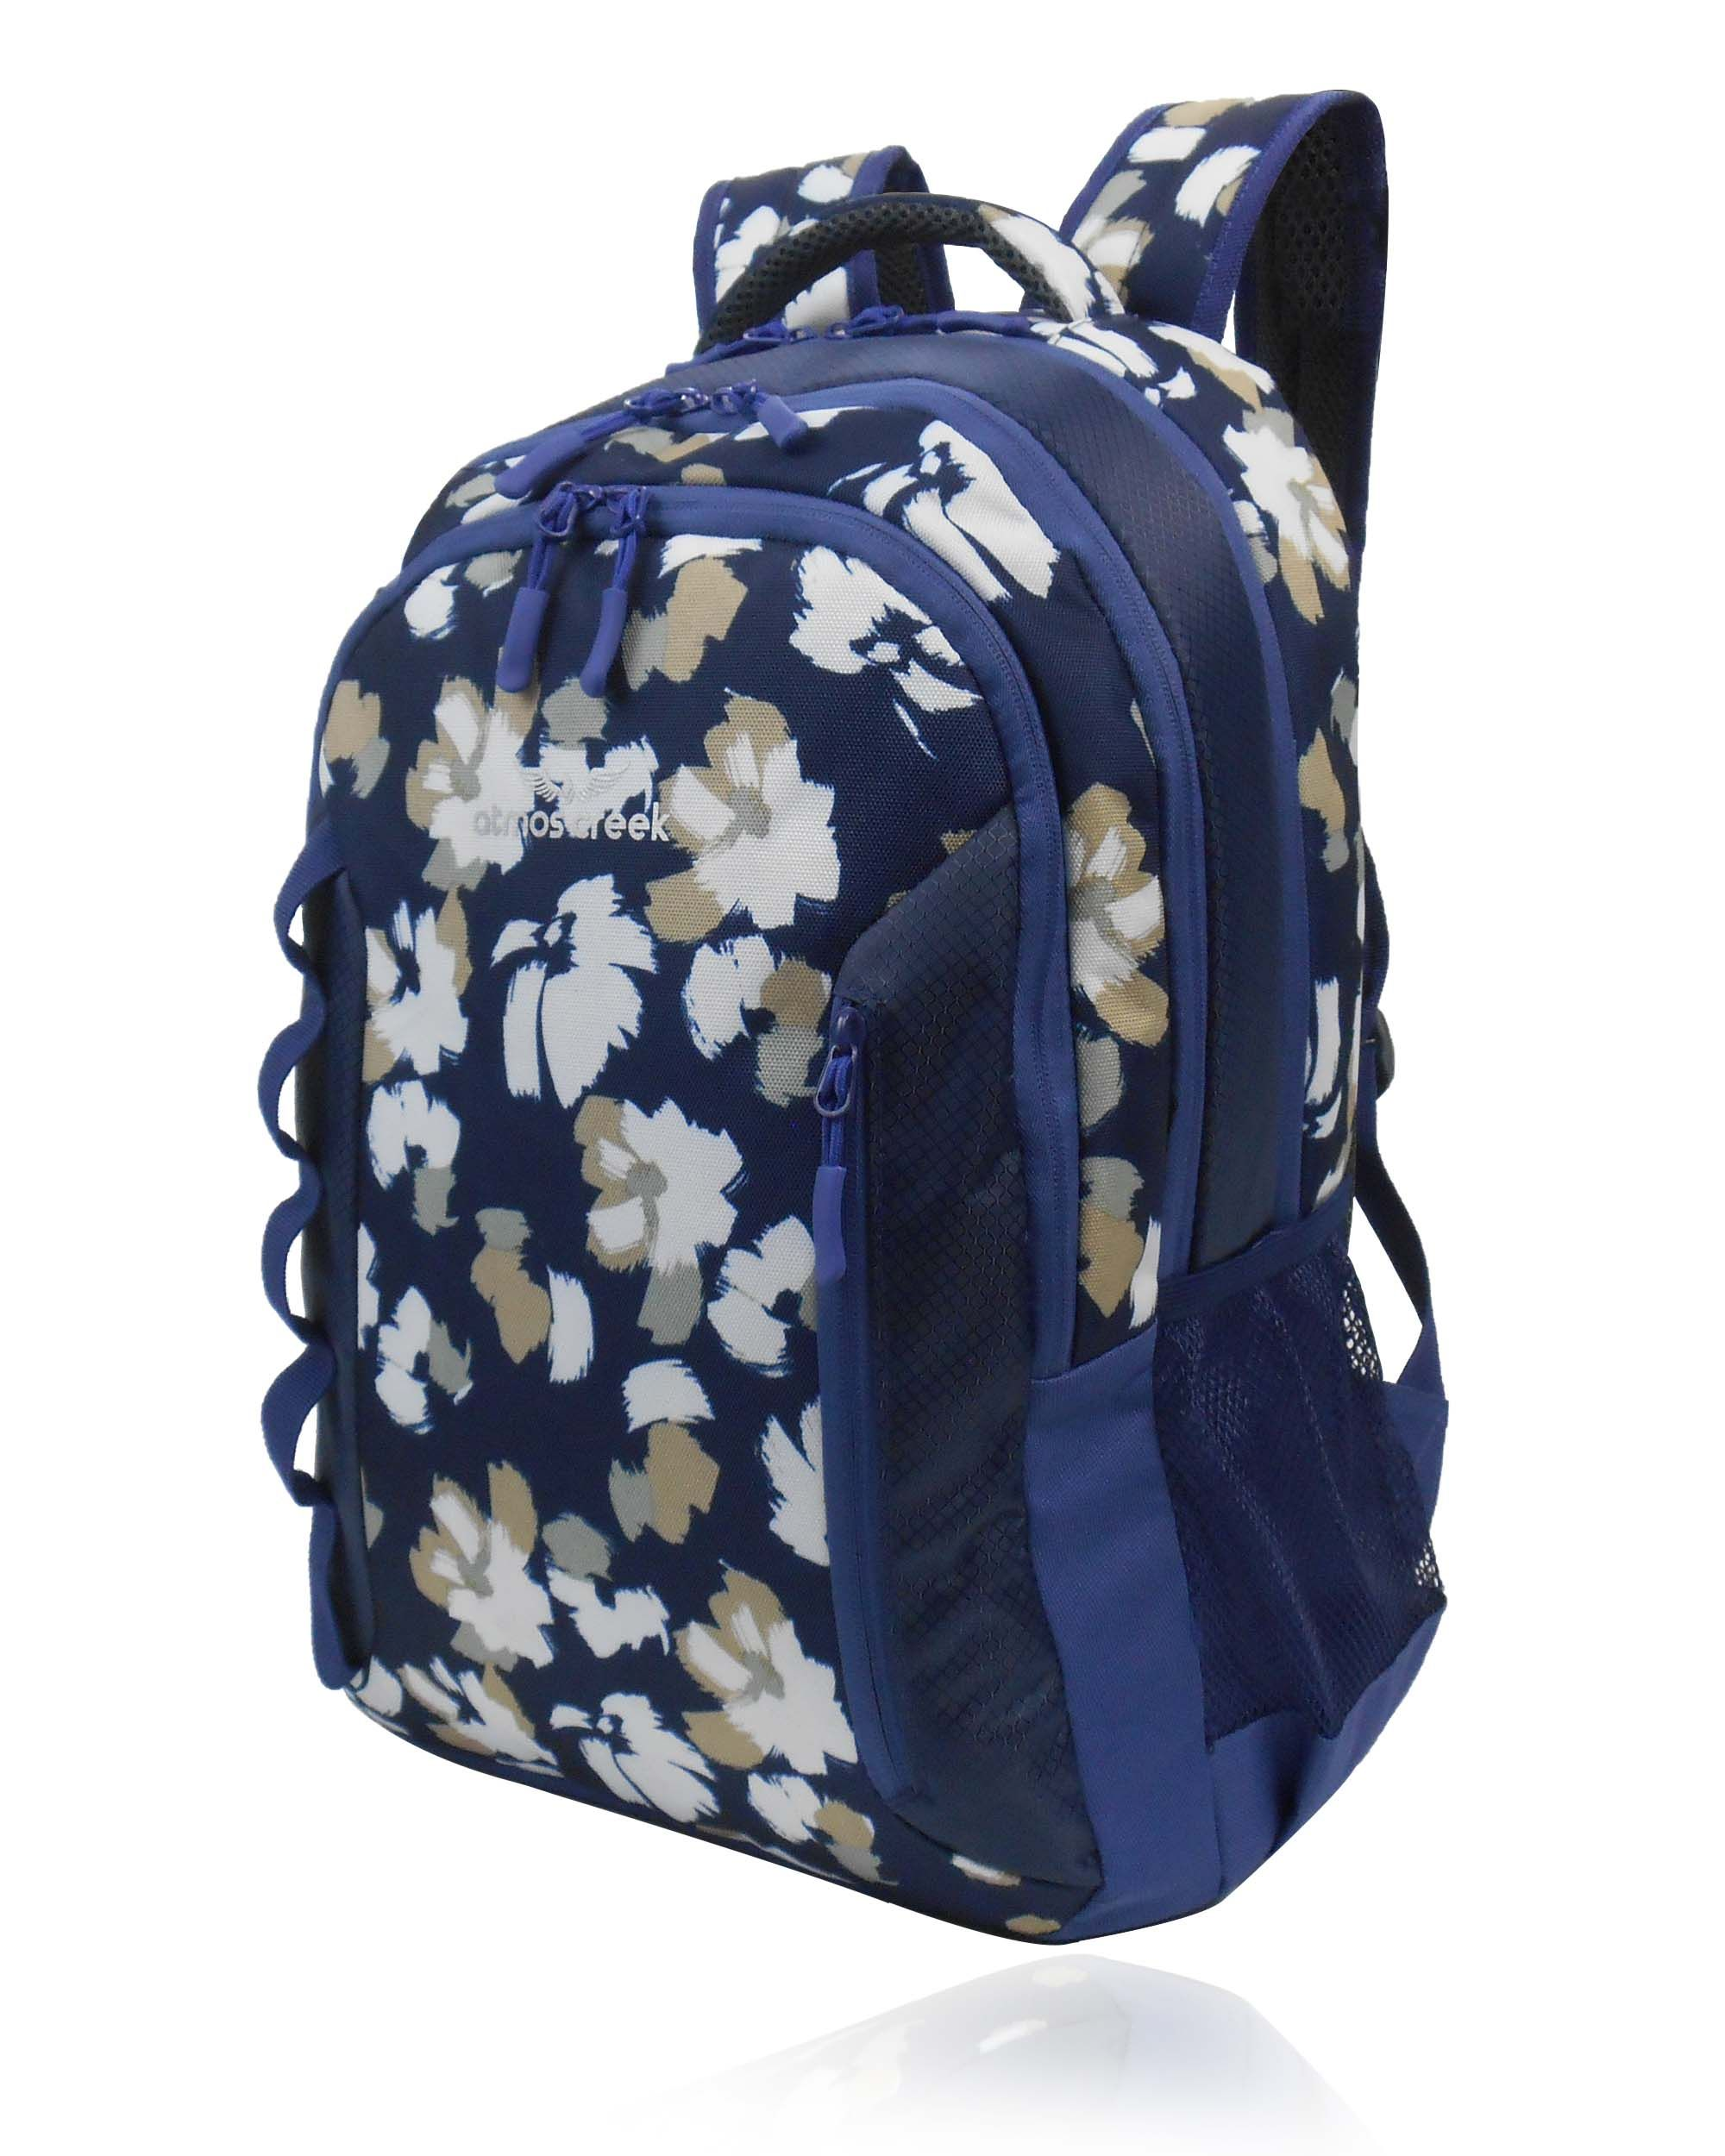 96d19737f This awesome floral printed backpack from Atmos Creek is power packed and  elegant at the same time. Made of extra durable materials and trendy print,  ...